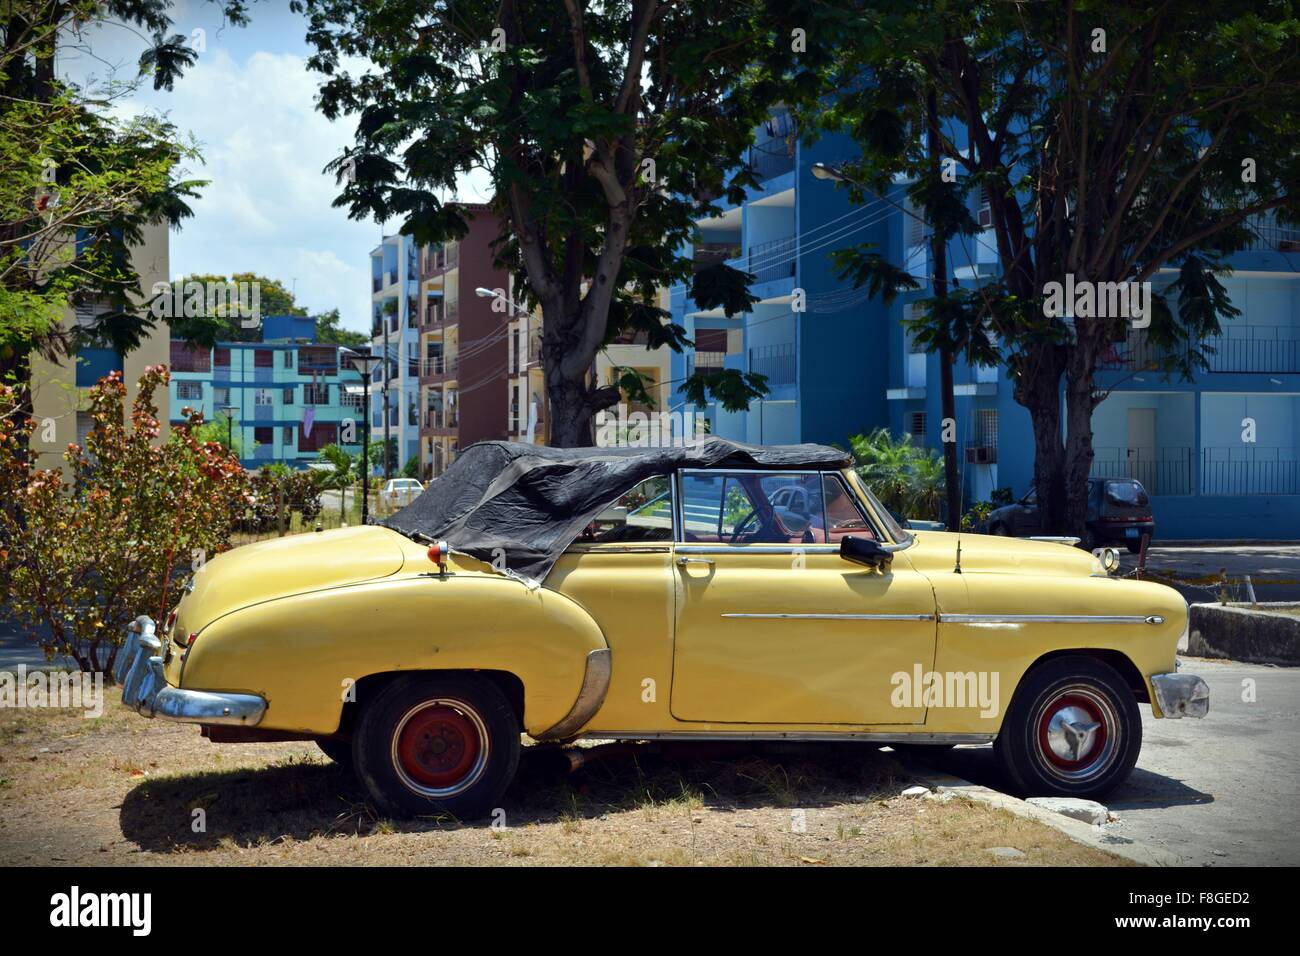 beat up vintage yellow soft top car parked badly in a residential street in Havana Cuba - Stock Image